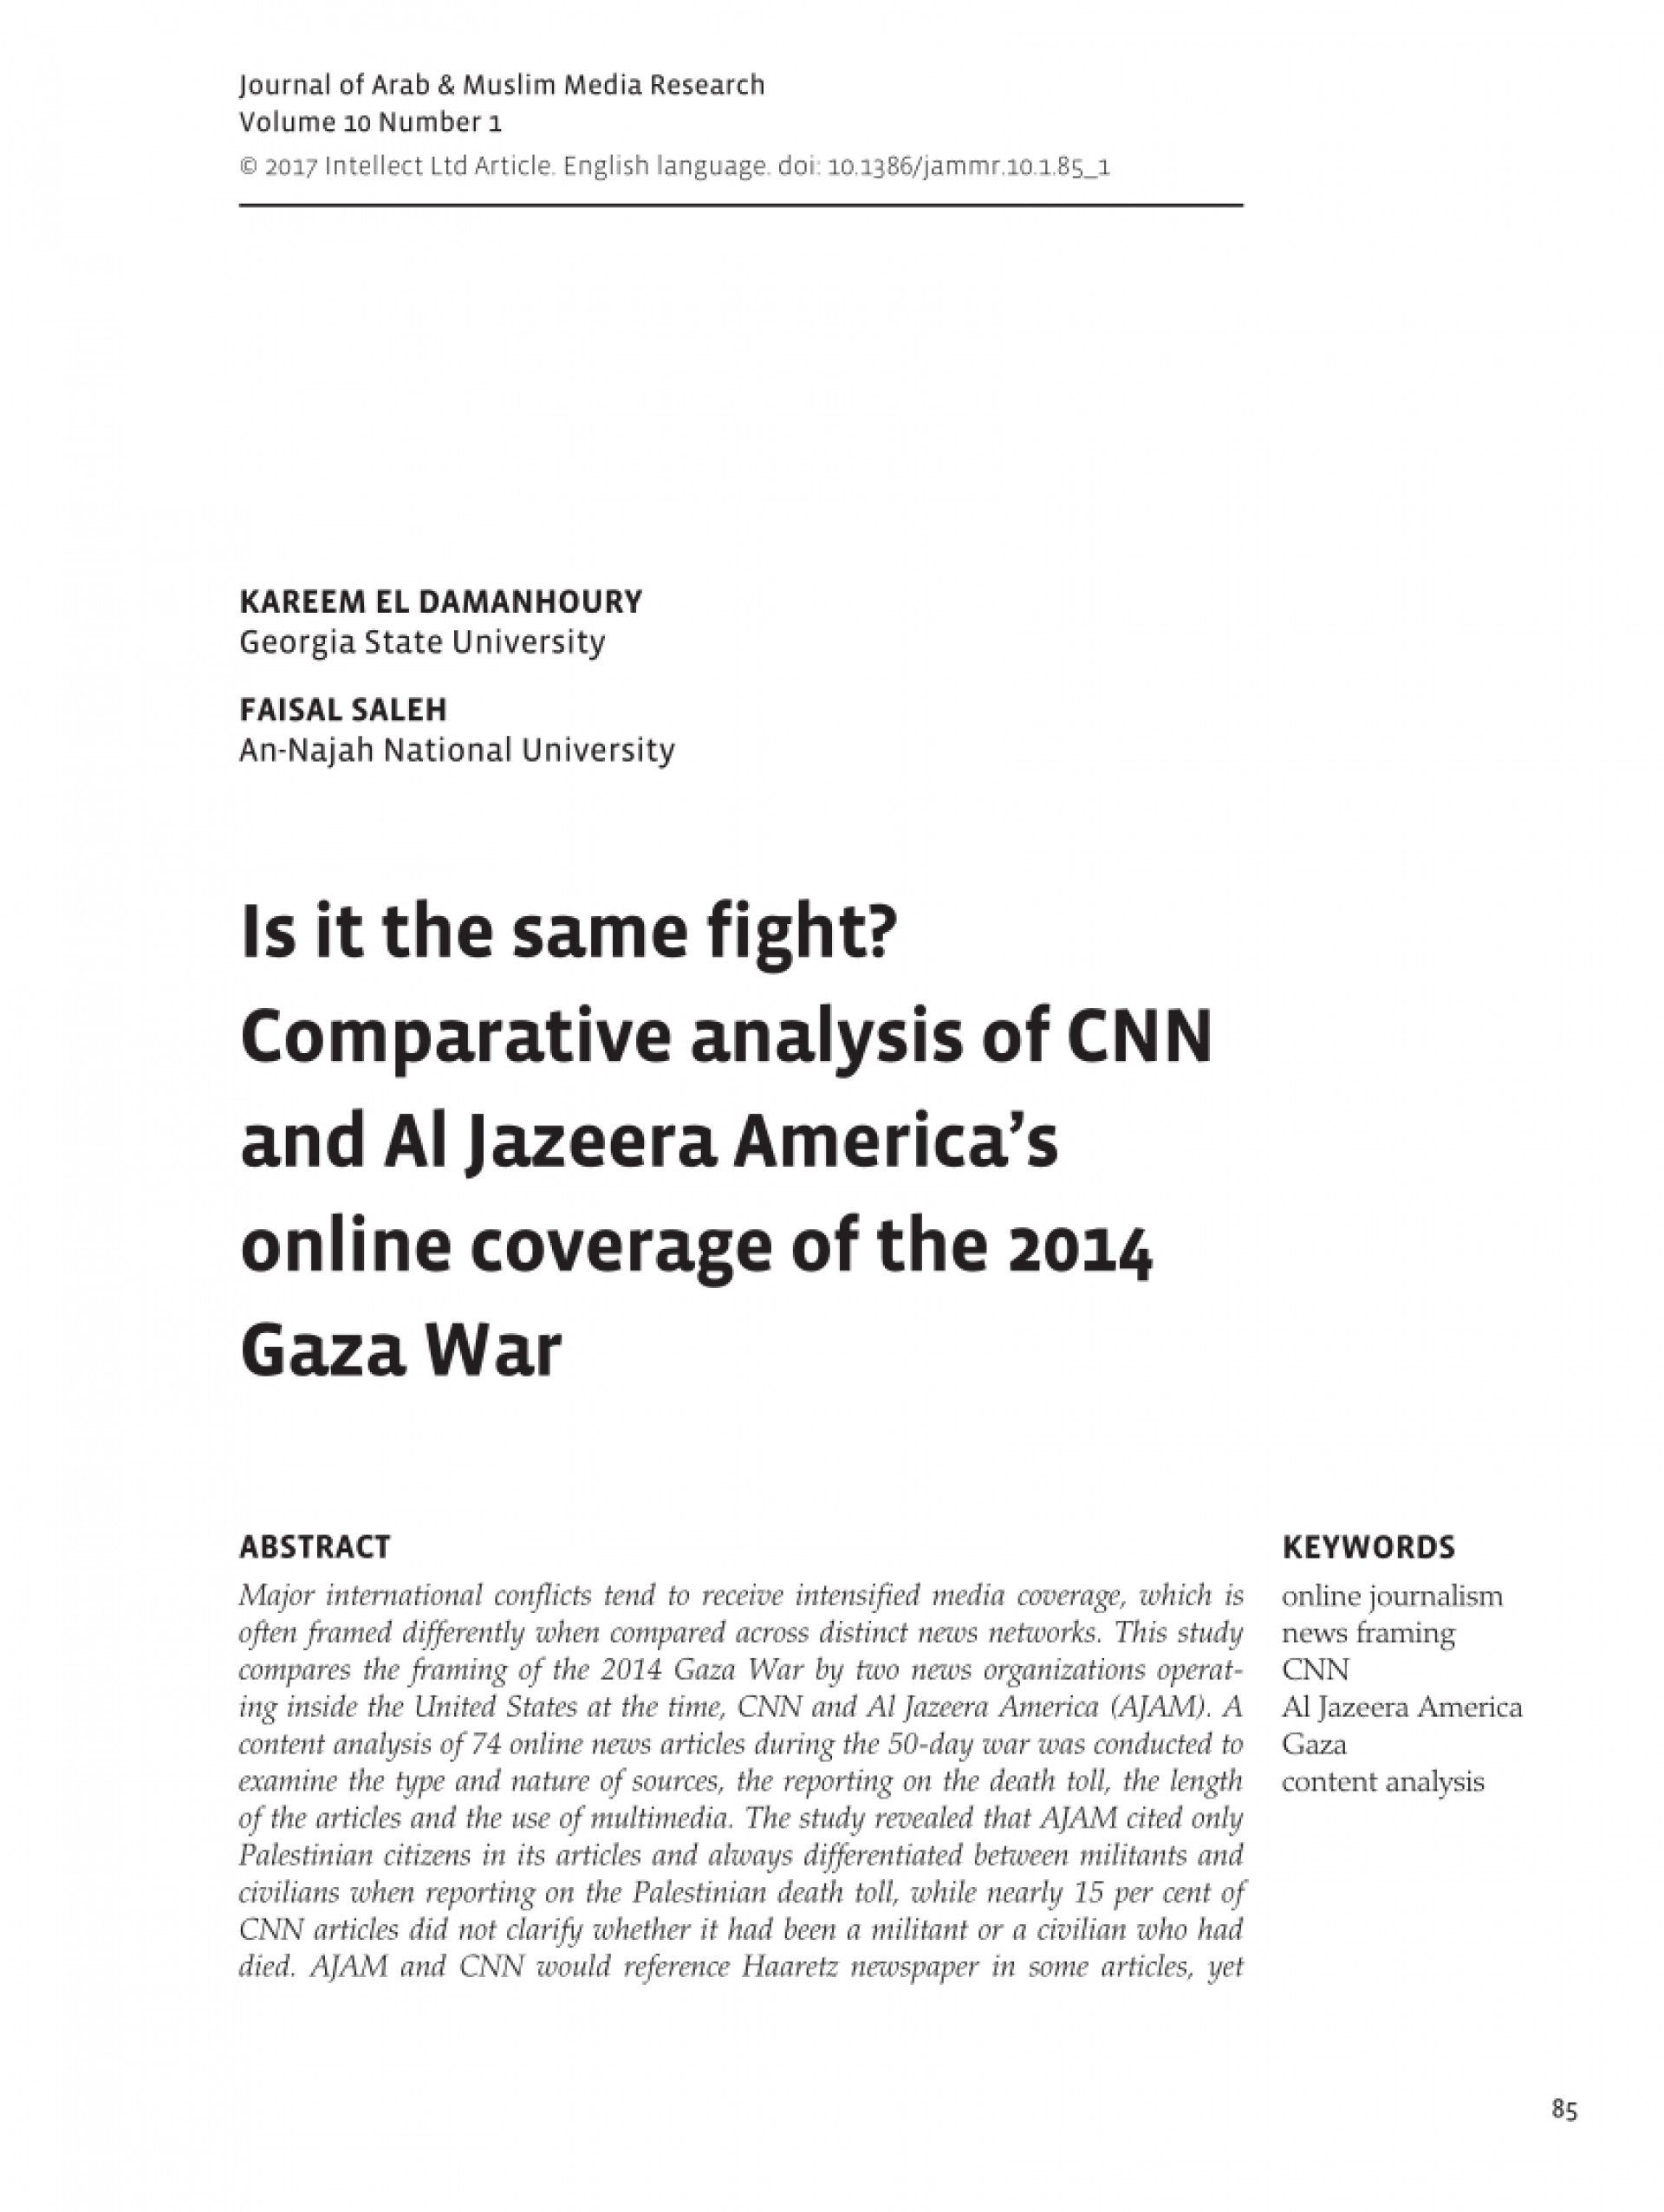 006 Is Cnn Credible Source For Research Paper Staggering A 1920